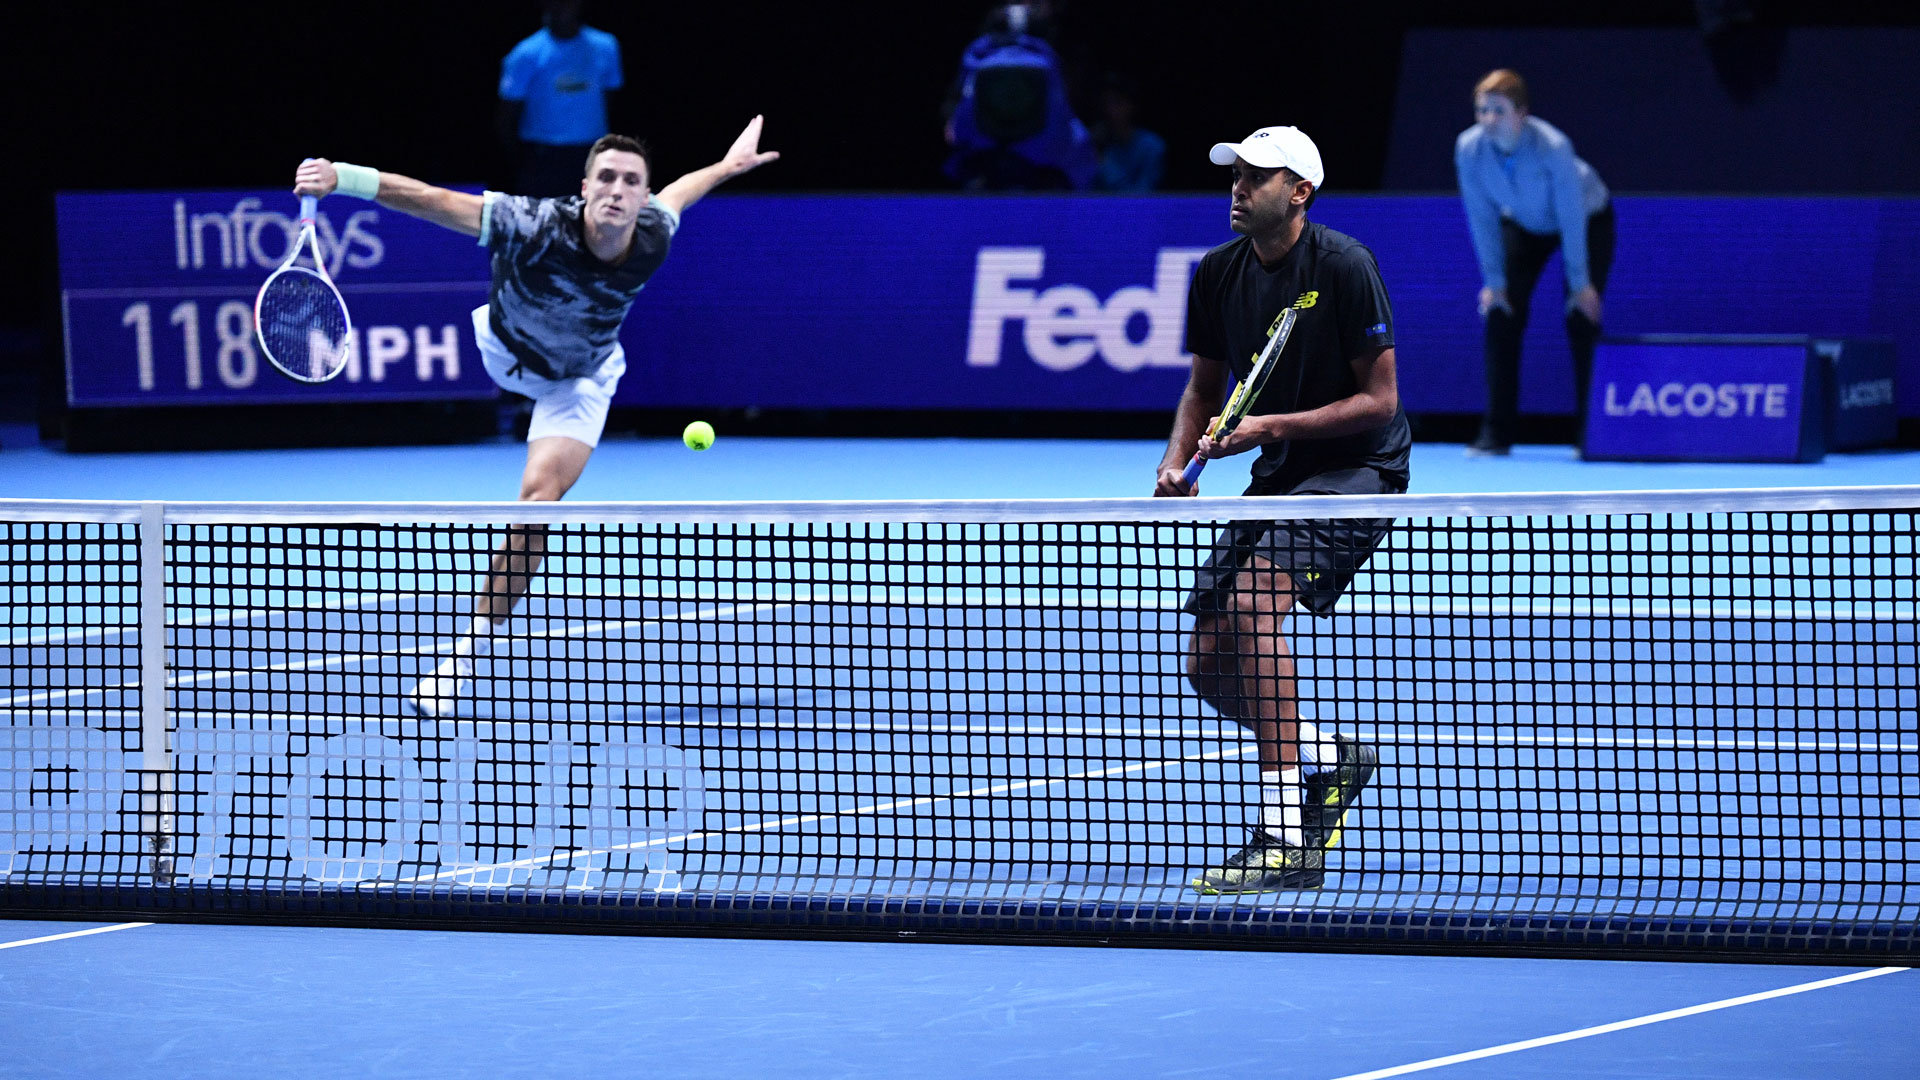 Joe Salisbury and Rajeev Ram pick up their first win in Group Jonas Bjorkman at the Nitto ATP Finals.